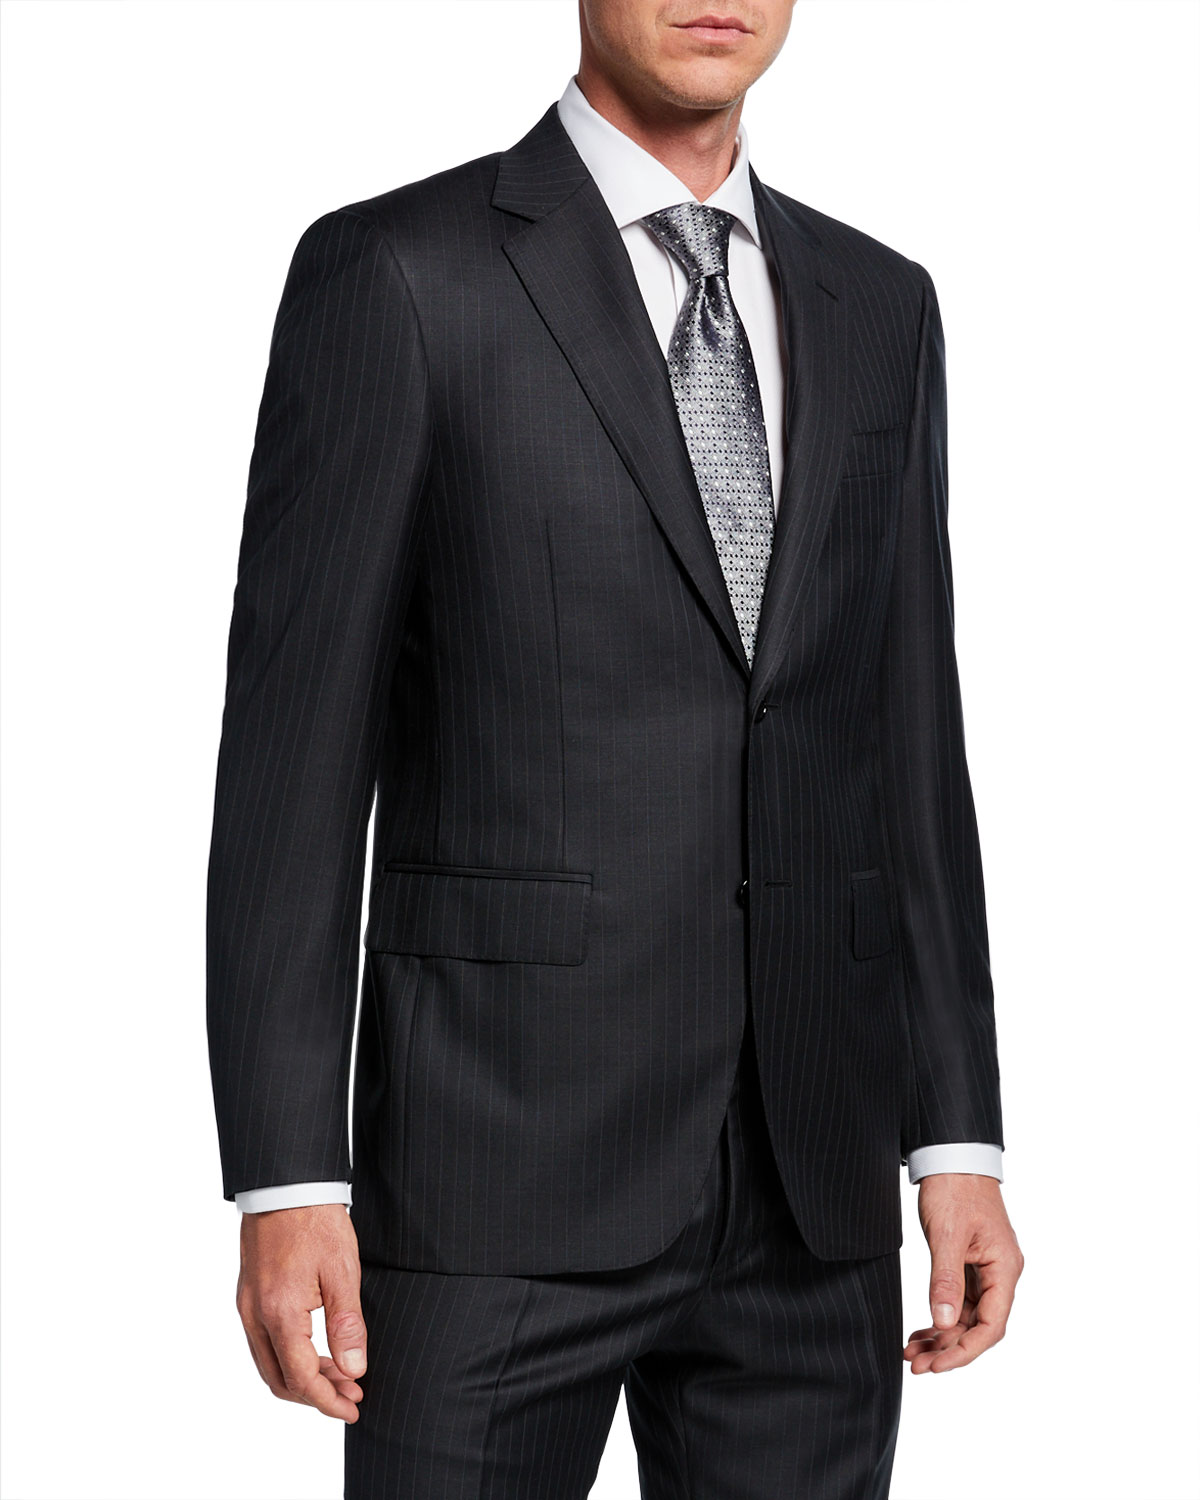 Men's Pinstriped Two Piece Wool Suit by Canali